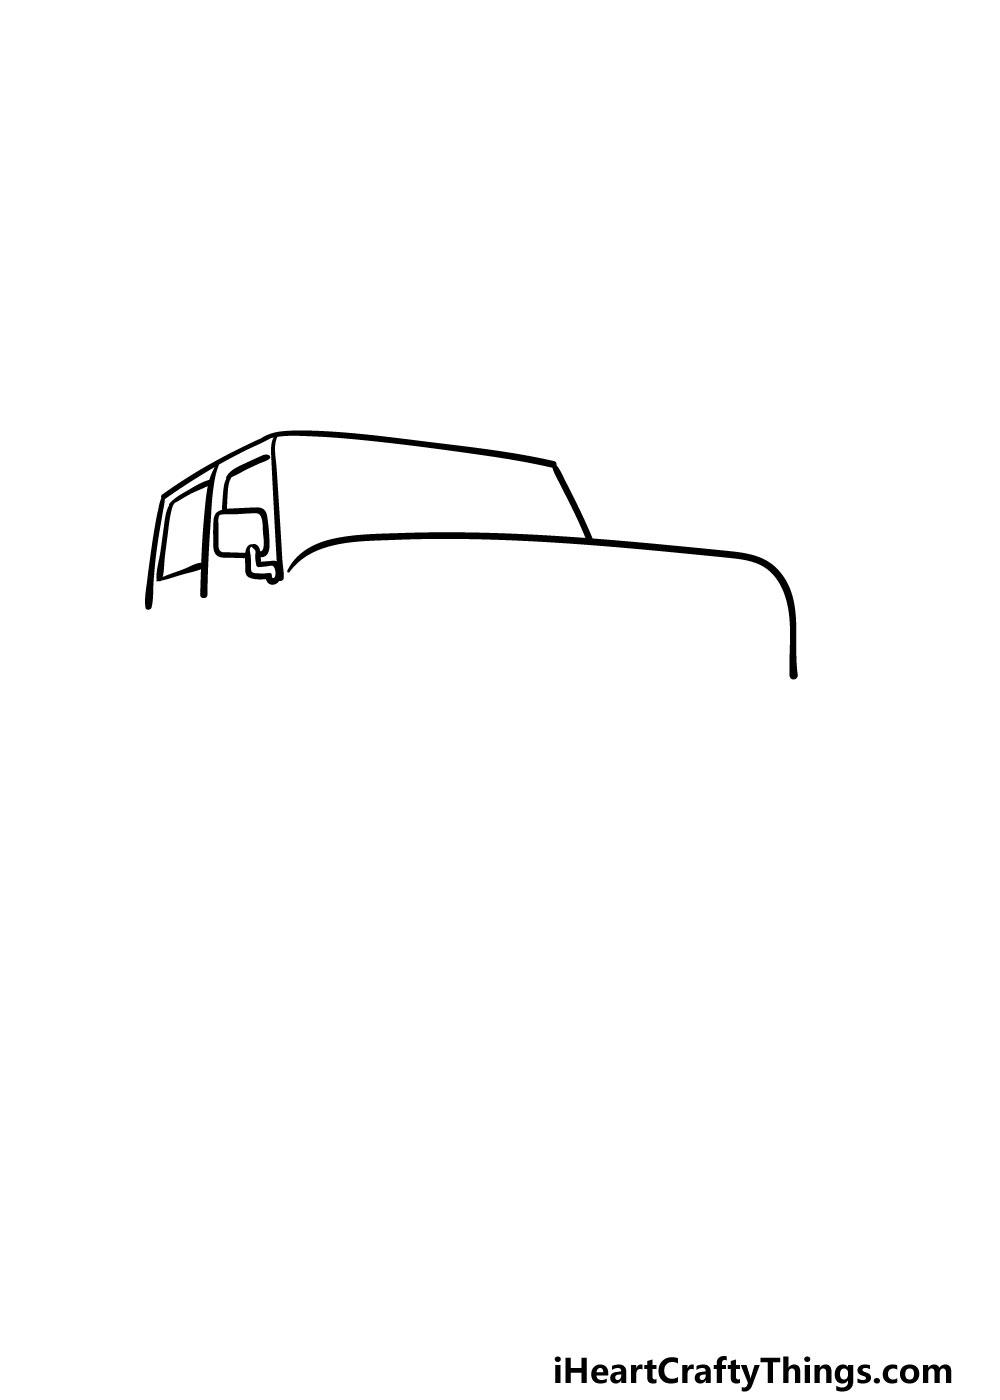 drawing a jeep step 2